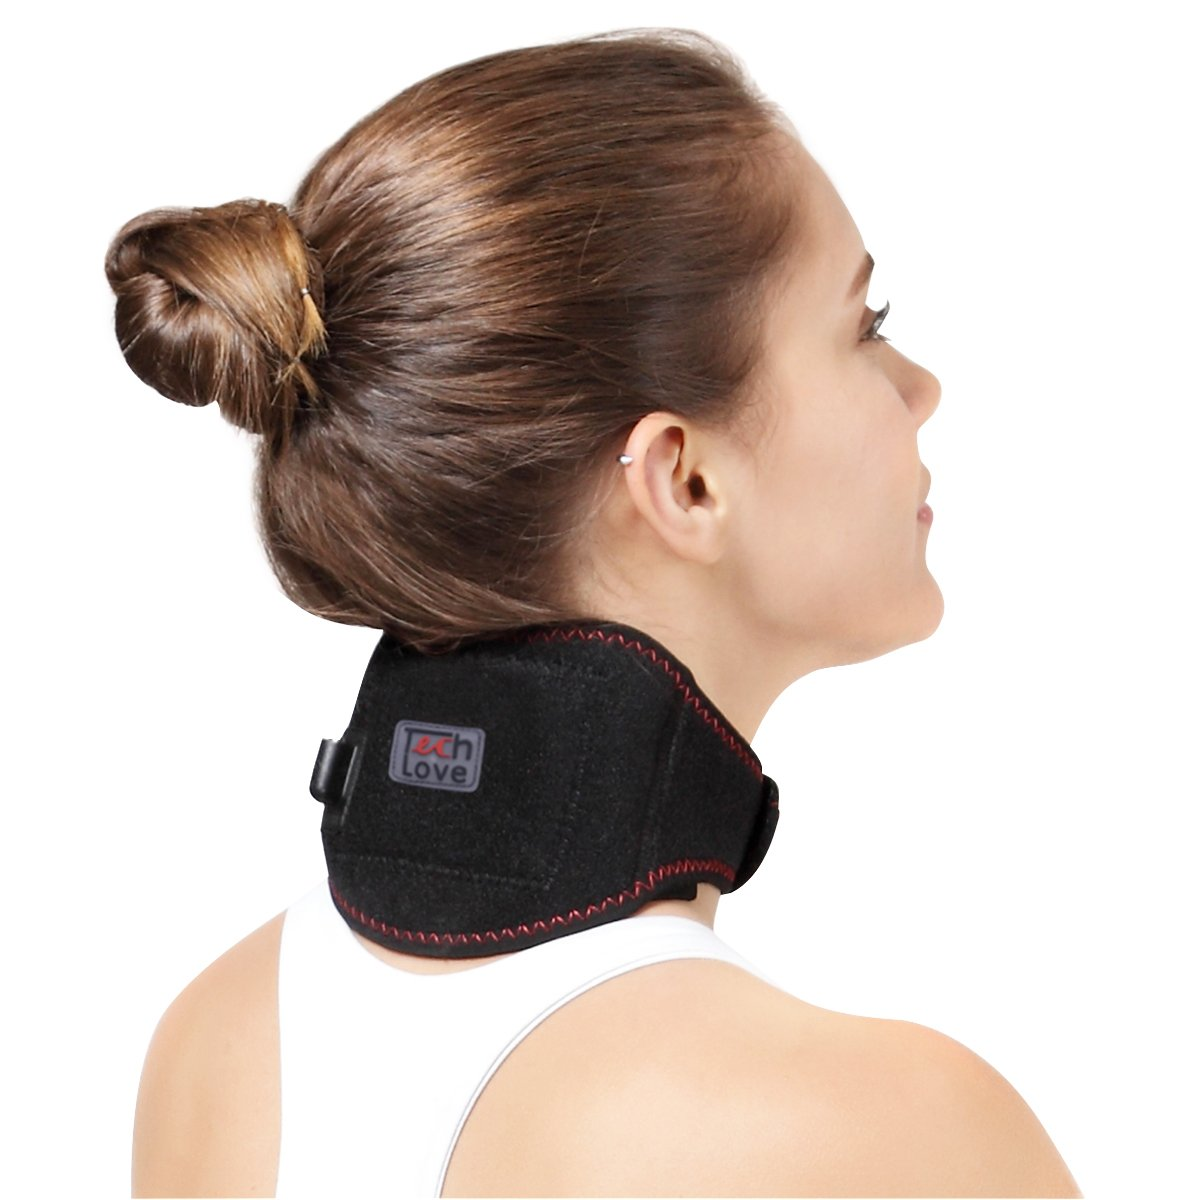 Heated Neck Brace Heat Therapy Cervical Wrap by TechLove with Moxa Bag for Men and Women Suffer Neck Pain, Injury, Stiffness and Headache (Black)